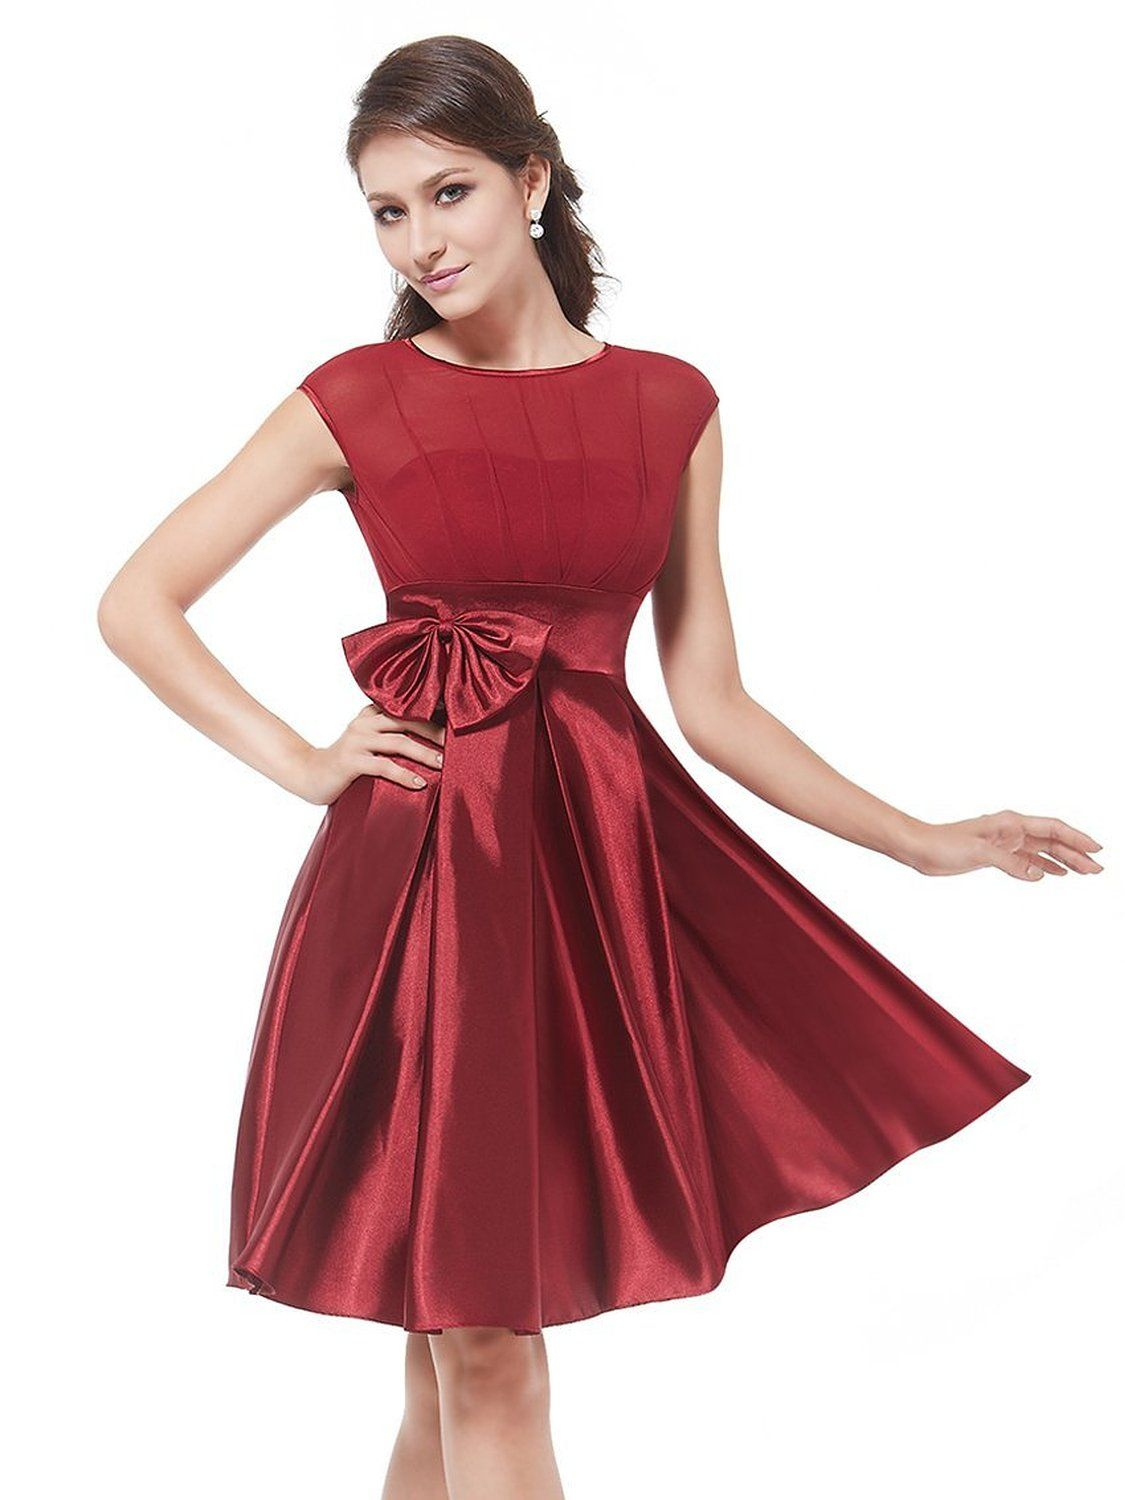 Robot Check Knee Length Cocktail Dress Red Cocktail Dress Womens Cocktail Dresses [ 1500 x 1125 Pixel ]